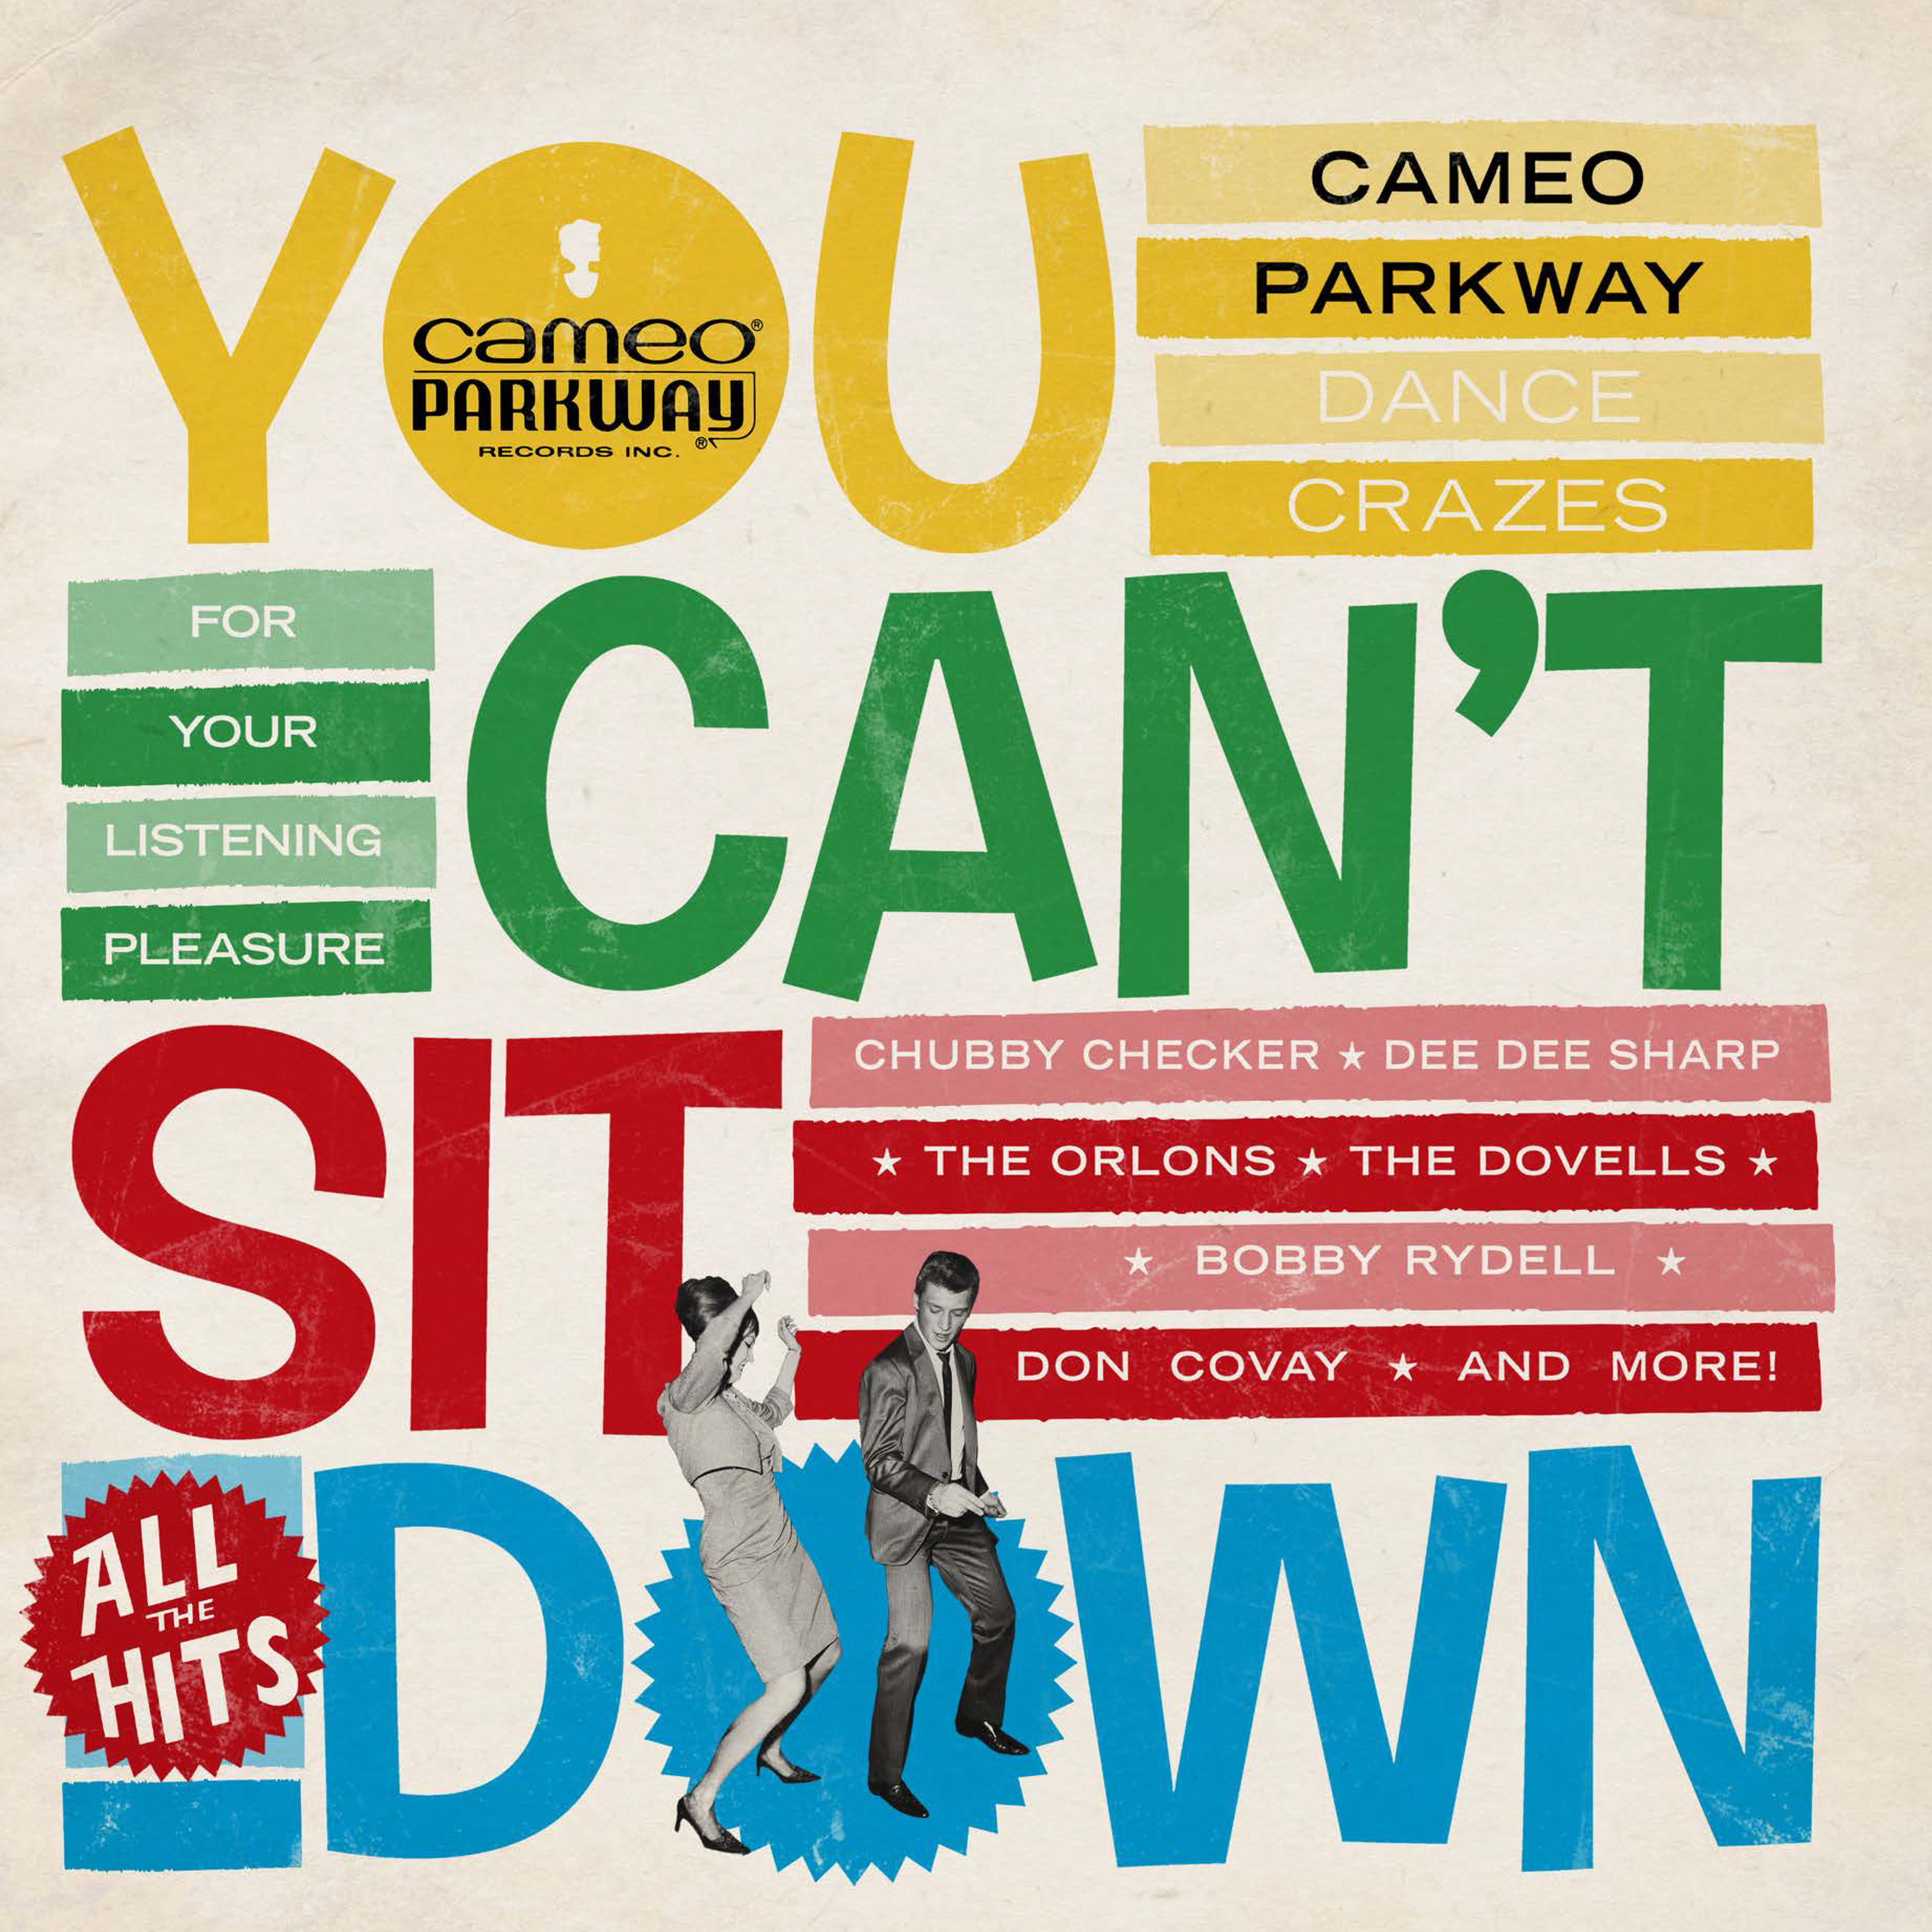 Various Artists - You Can't Sit Down: Cameo Parkway Dance Crazes 1958-1964 (U.K. Collection)  [RSD Drops 2021]